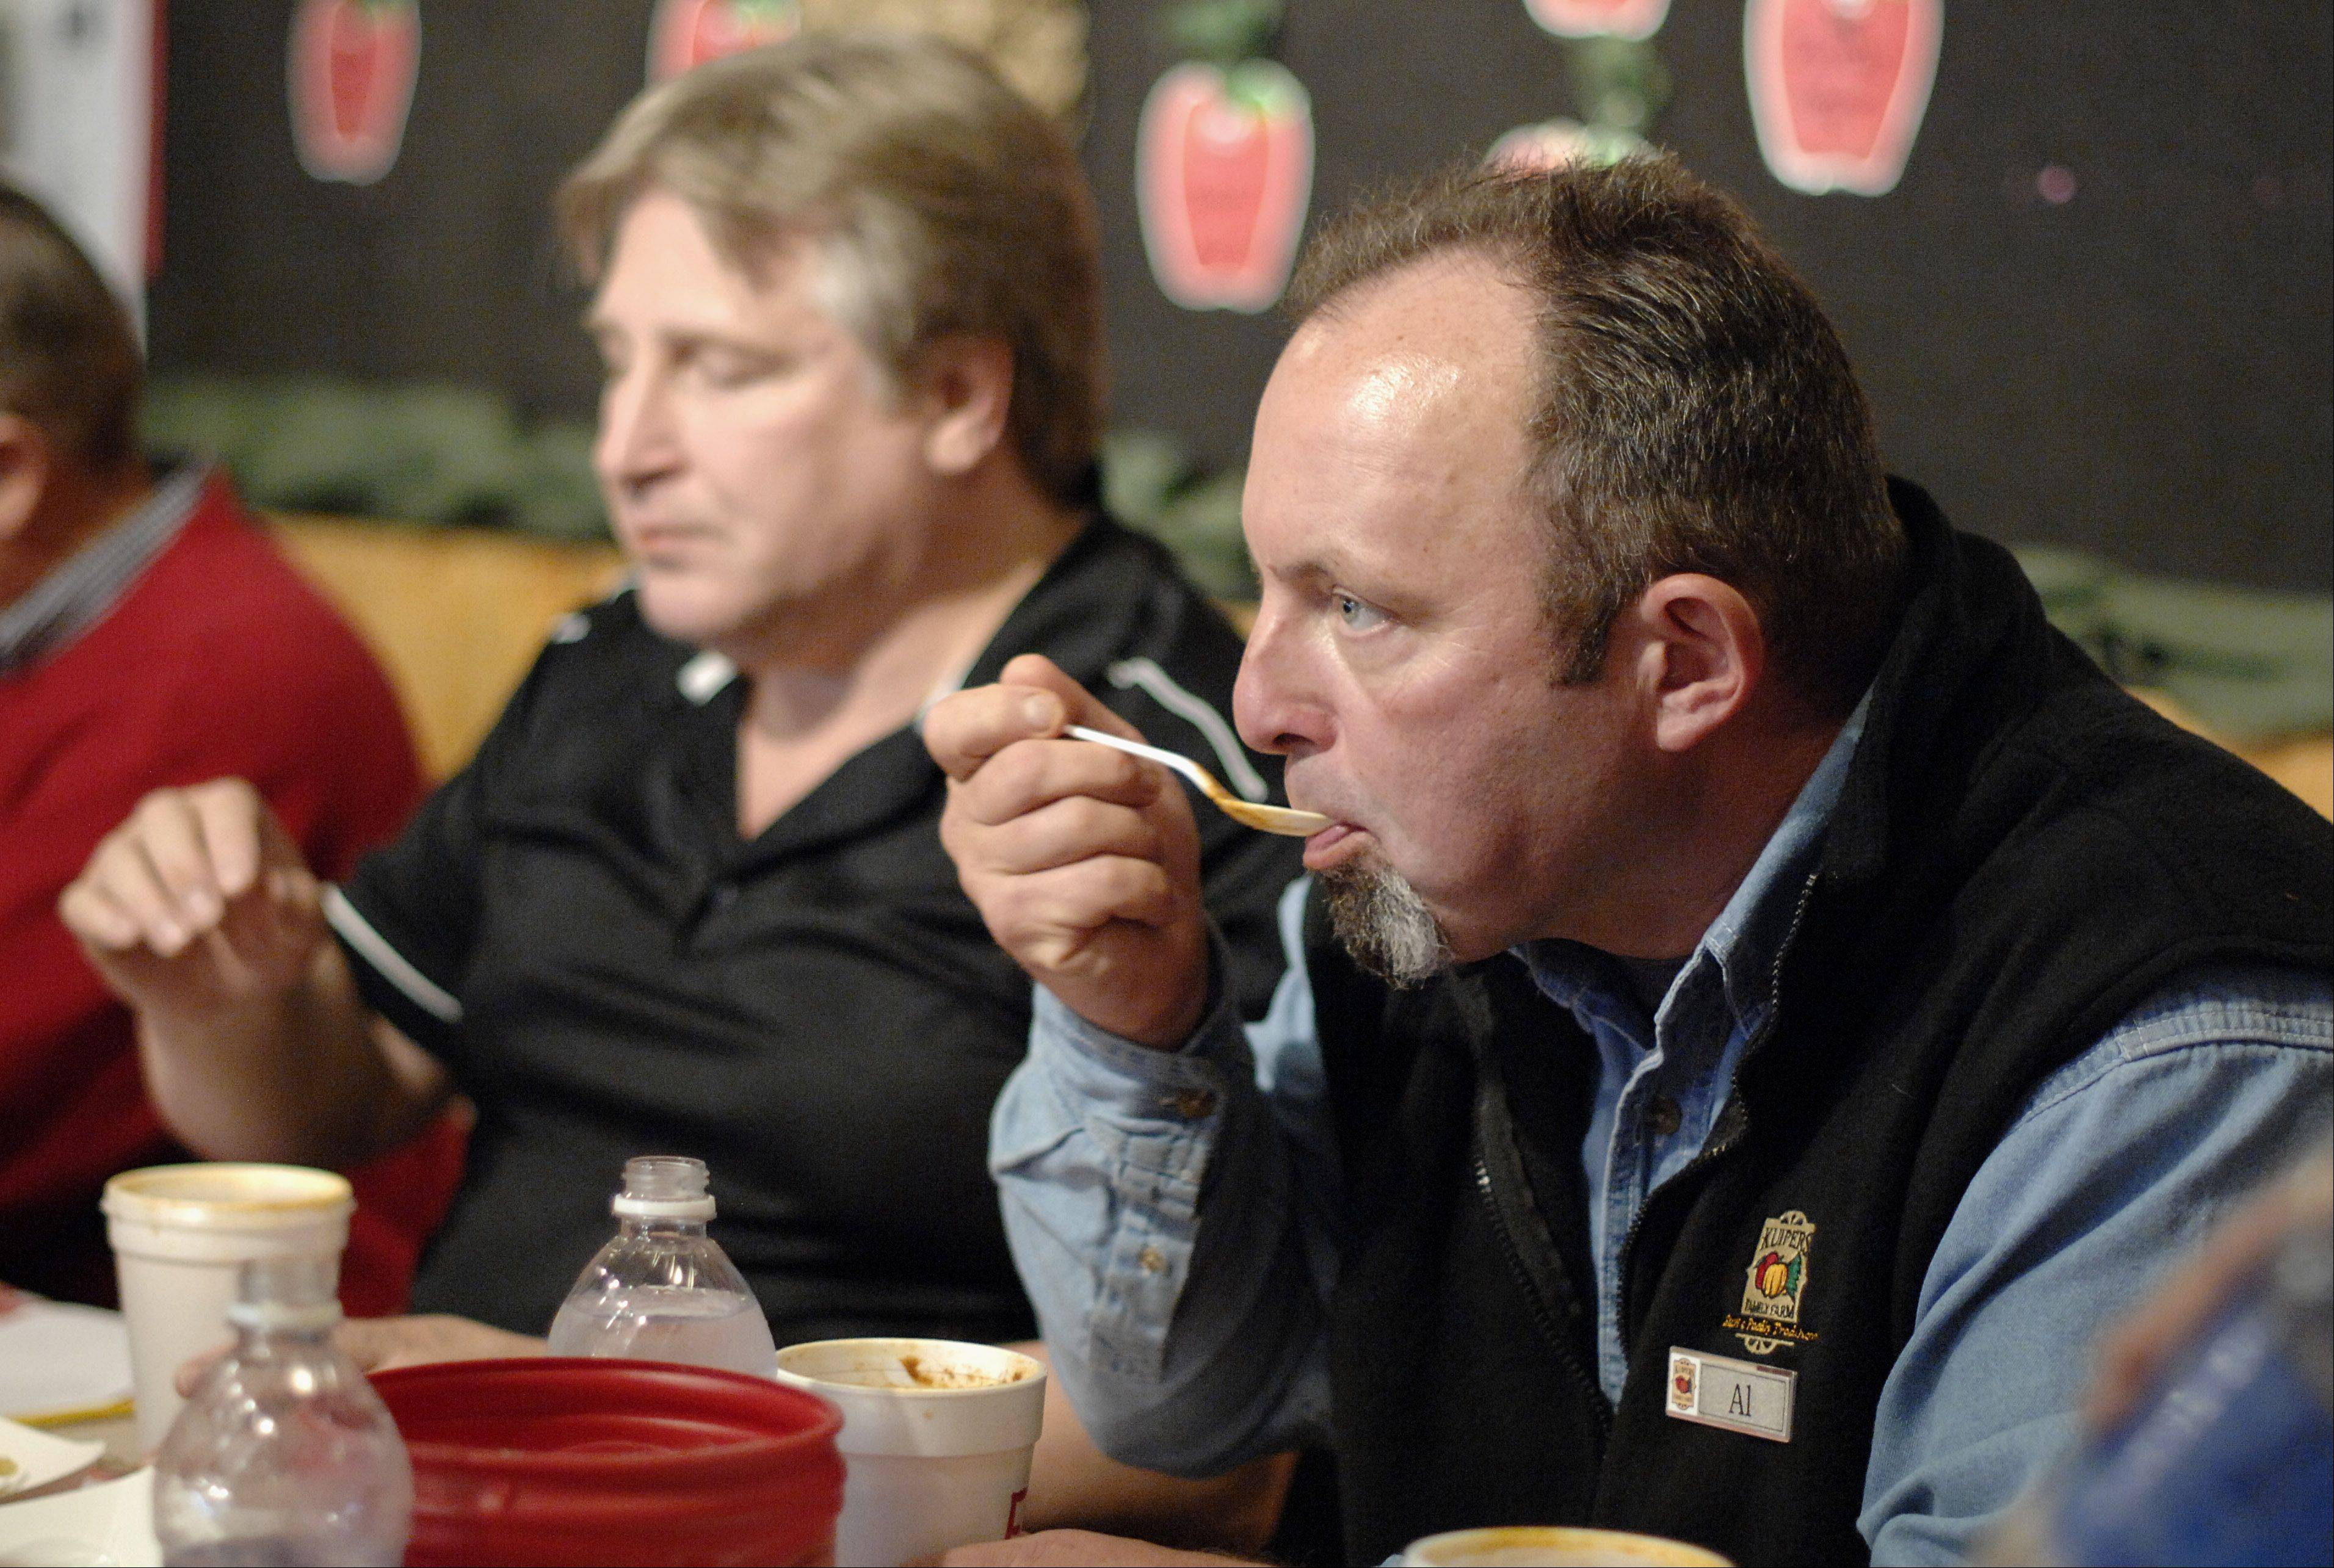 Al Shelton, food and beverage manager for Kuipers Family Farm, samples chili during judging at the farm's third annual Chili Cook-Off in Maple Park on Saturday.